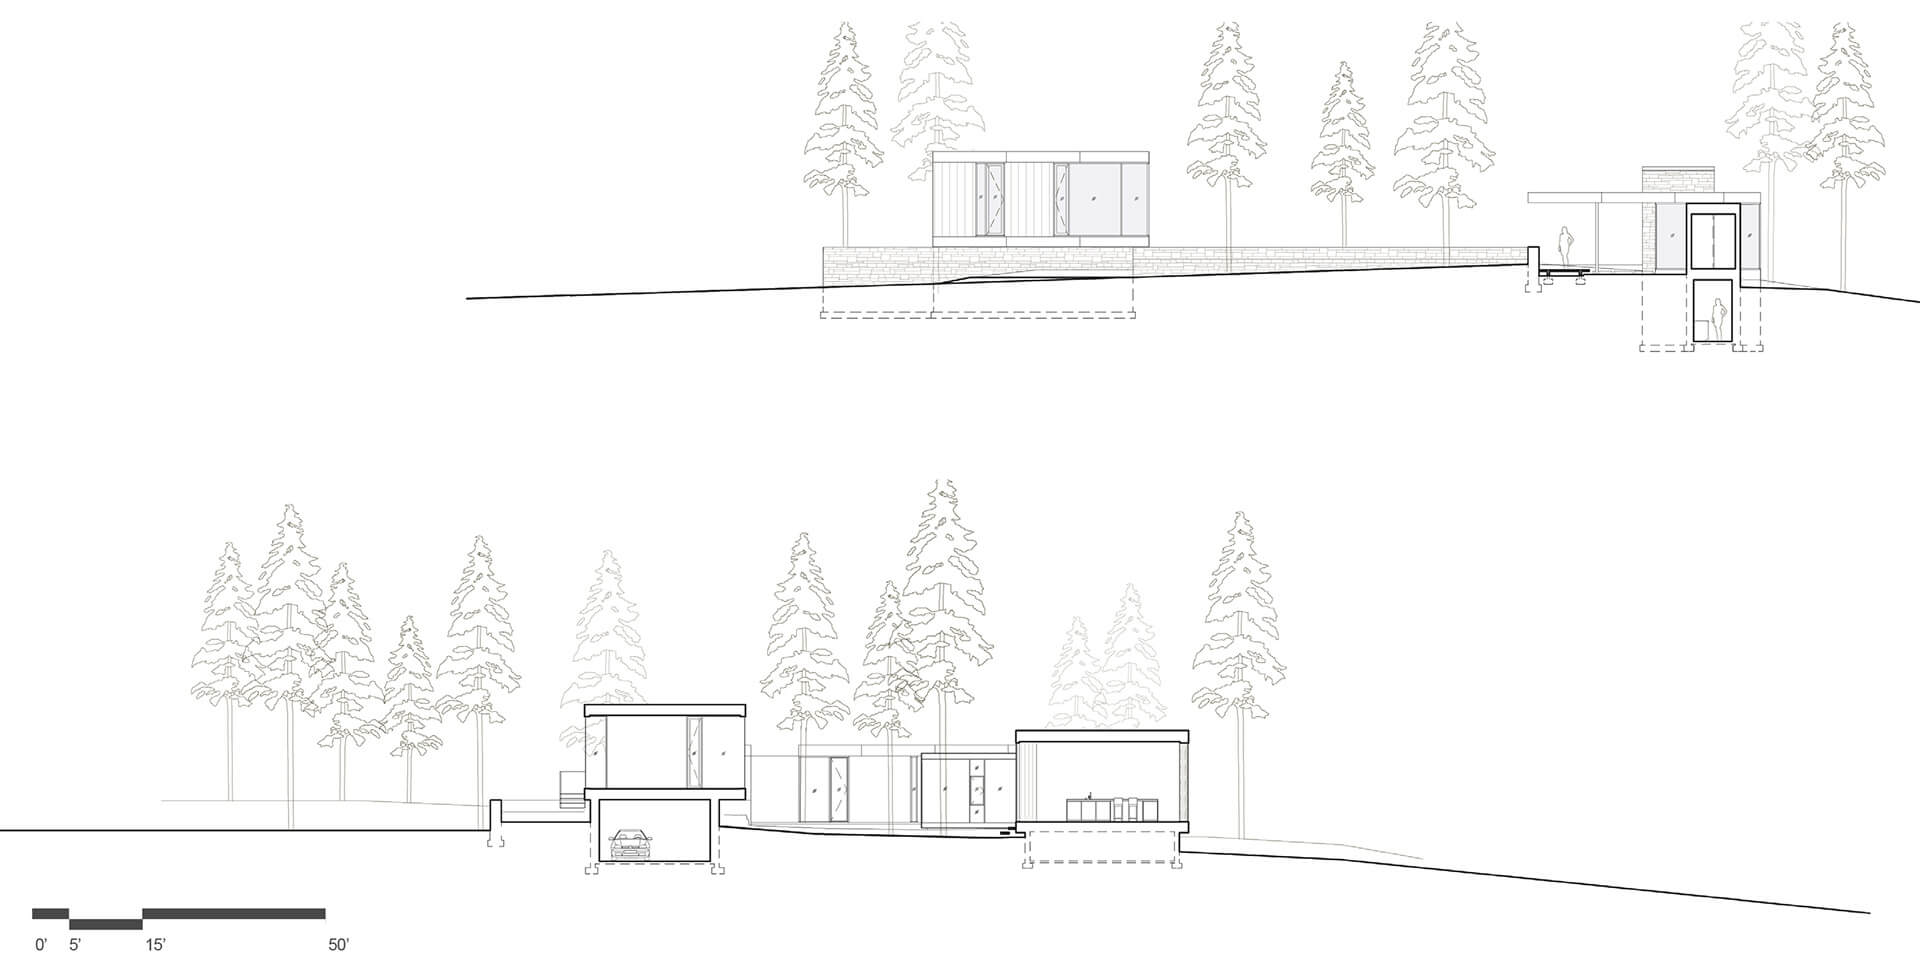 Sections showing massing of volumes above and below the ground | Whidbey Island Farm Retreat by mwworks | STIRworld